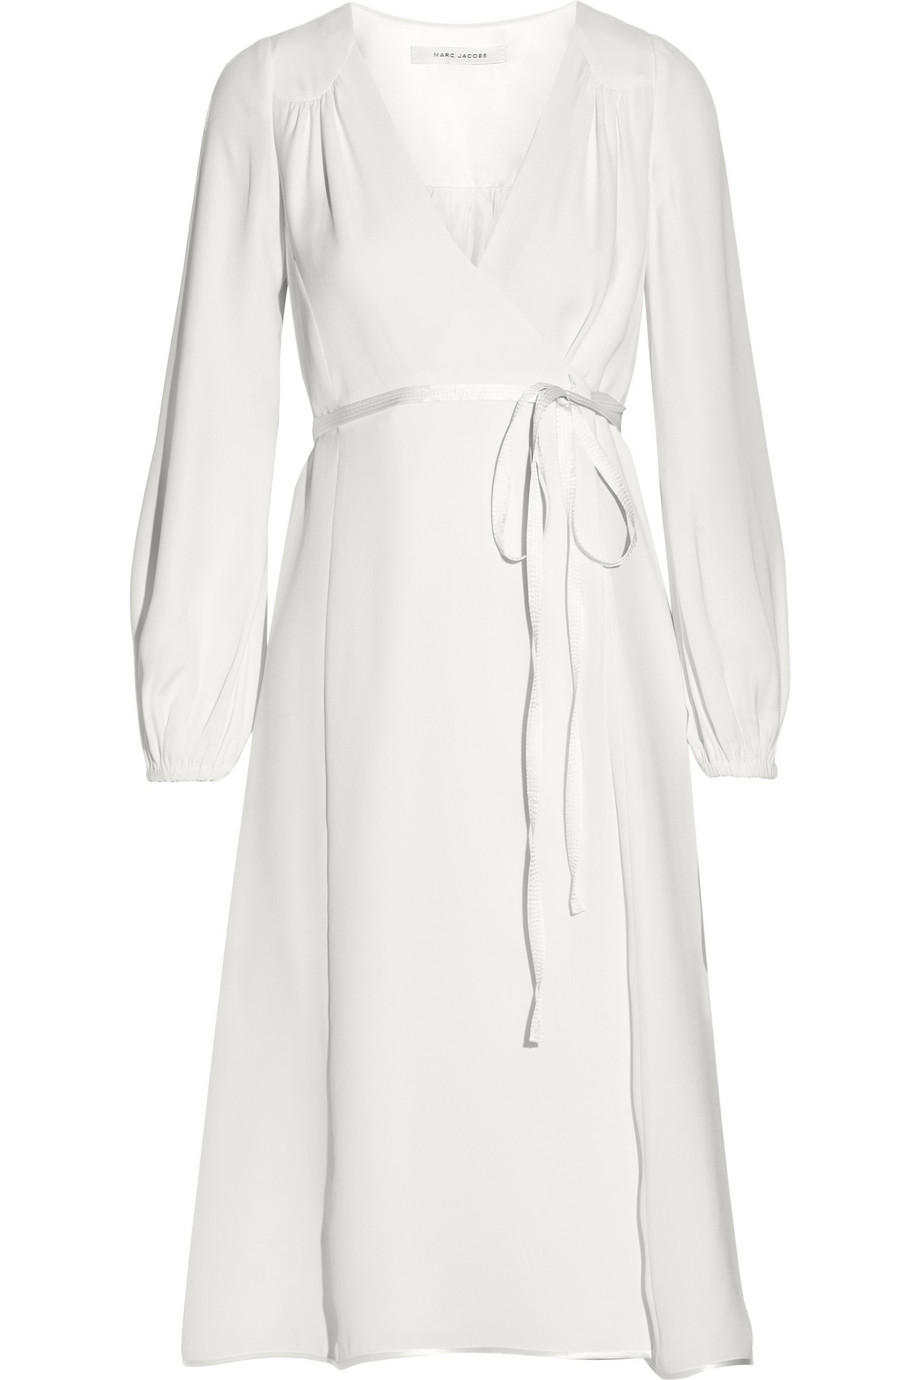 Lyst Marc Jacobs Silk Crepe Wrap Dress In White